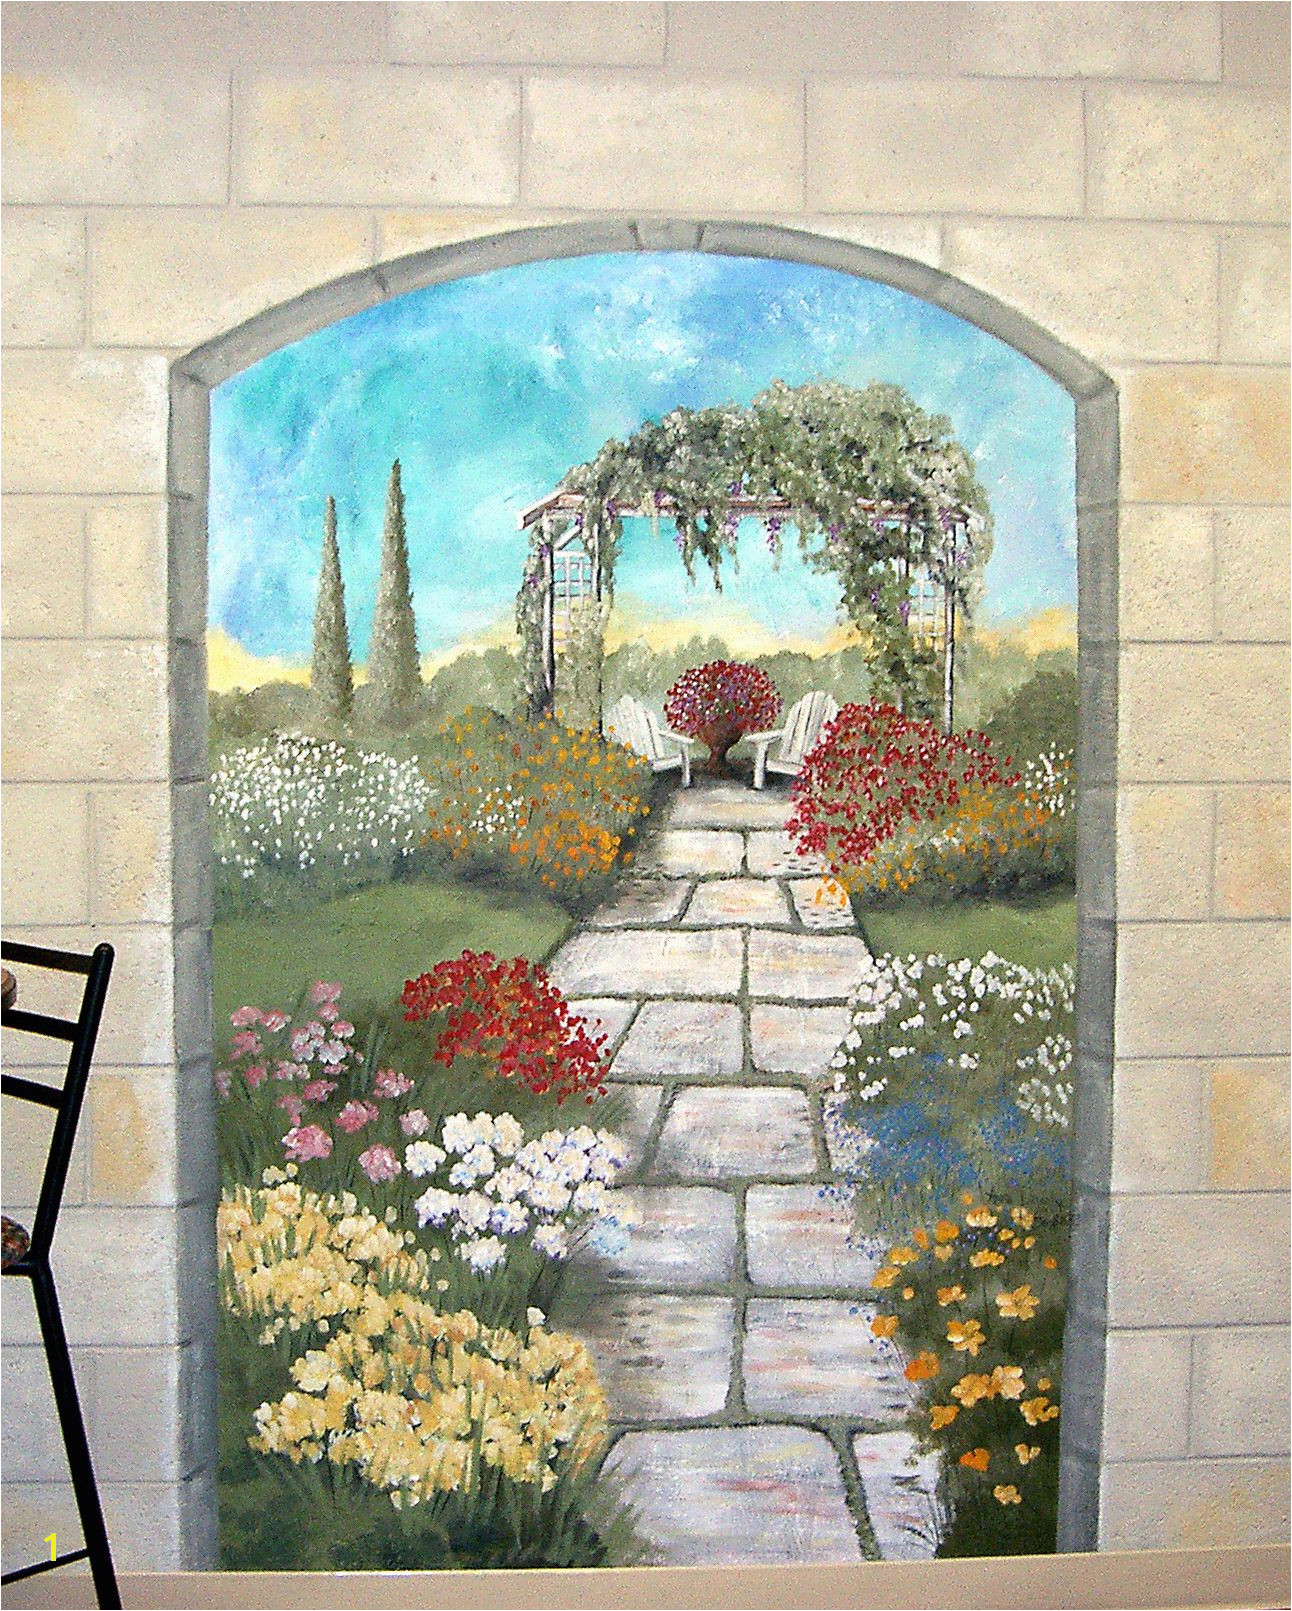 Garden mural on a cement block wall Colorful flower garden mural with terrace